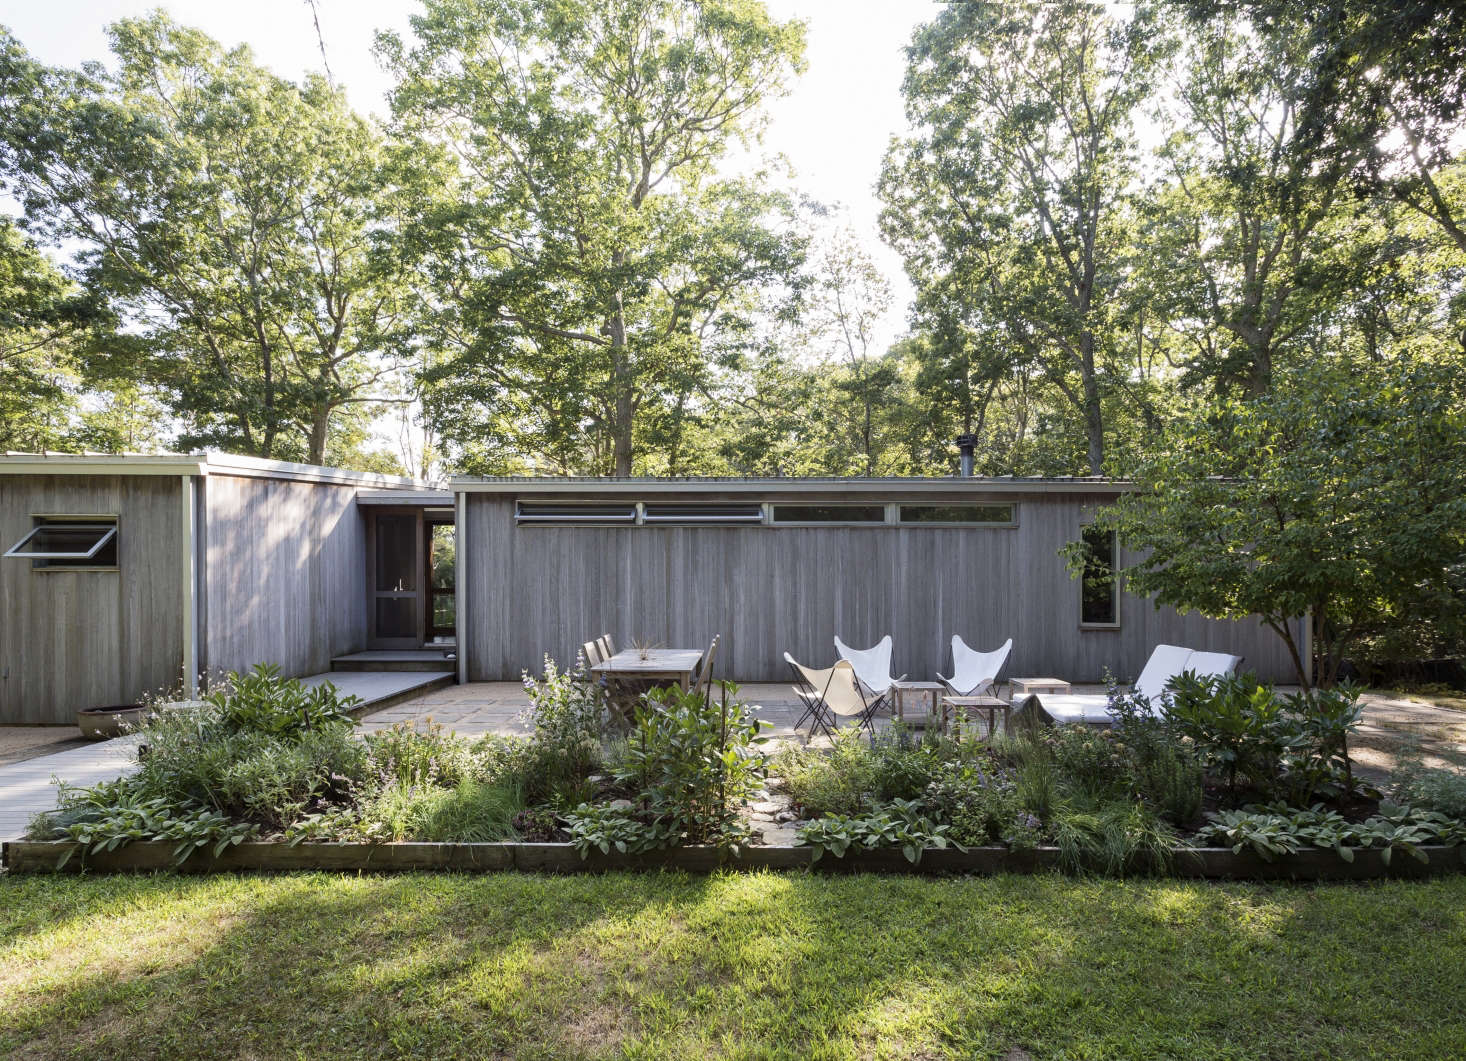 On Shelter Island, Suzanne Shaker and Pete Dandridge designed a patio with square concrete pavers set in a permeable based of decomposed granite. See more of the project in our new Gardenista book. Photograph by Matthew Williams for Gardenista.